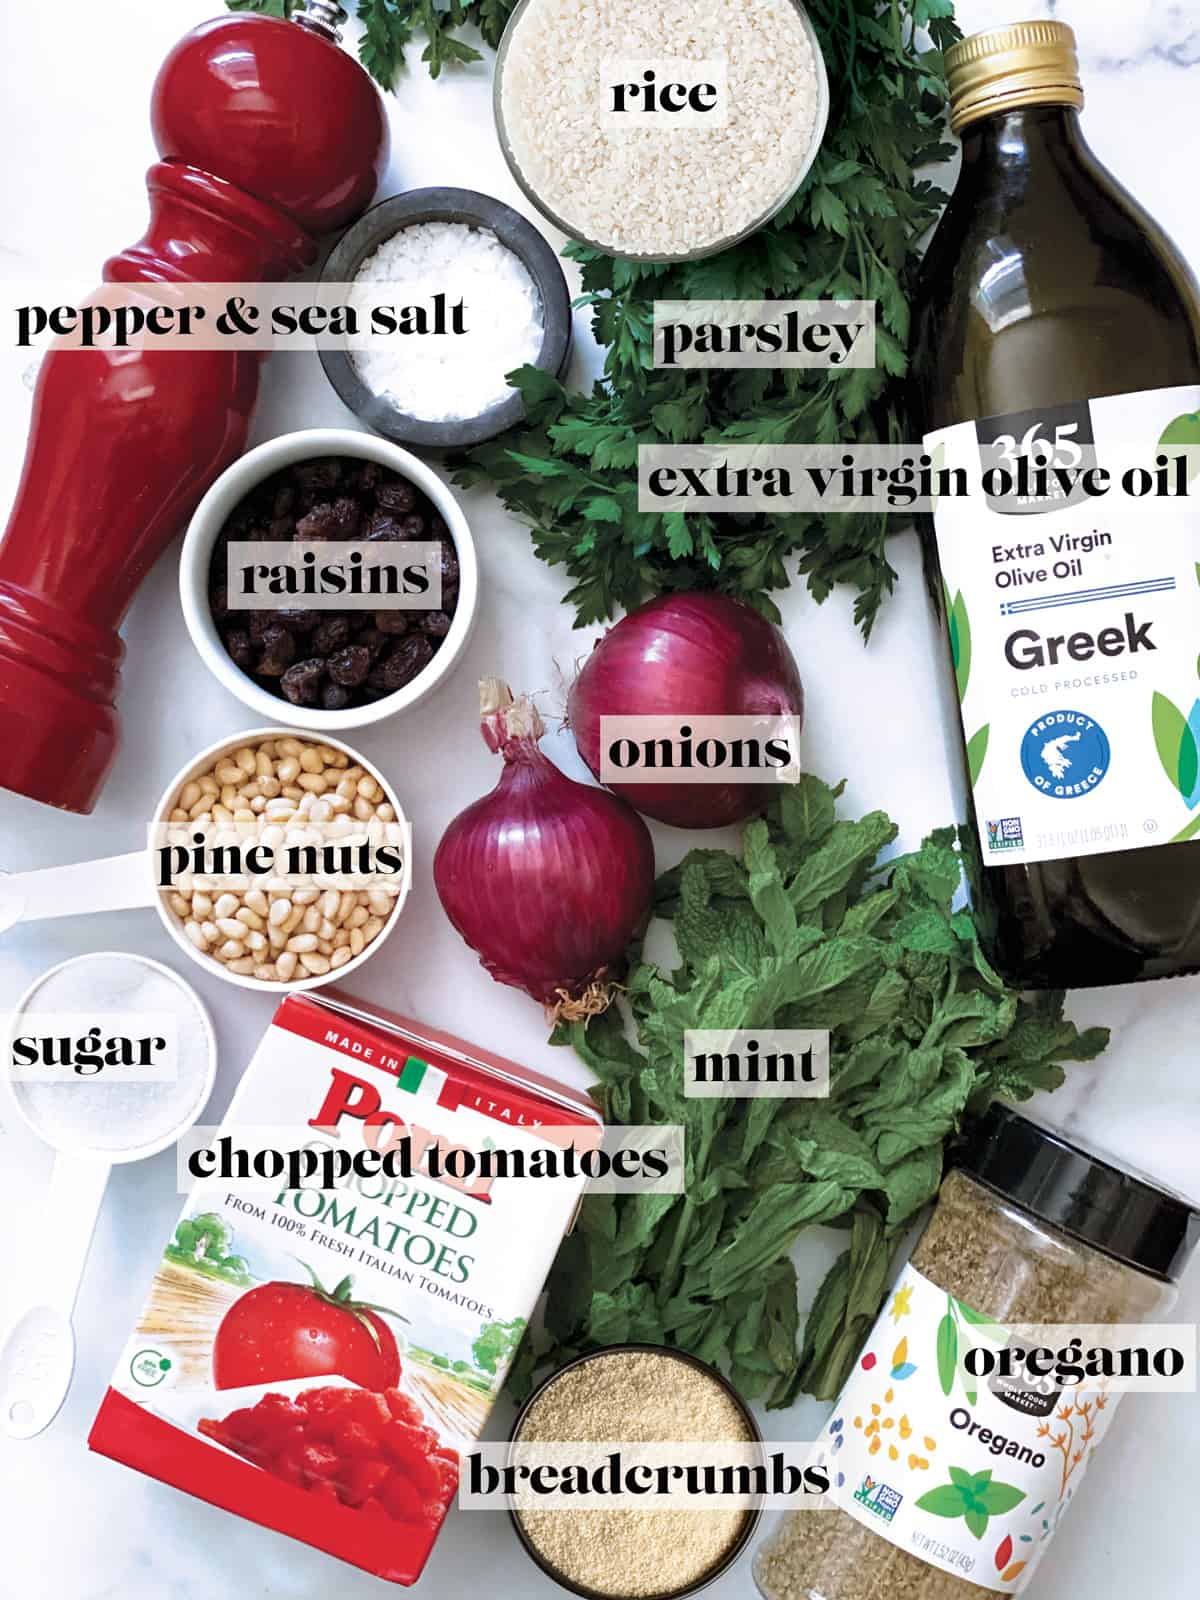 A pepper mill, small bowls with salt, pine nuts, sugar, rice, breadcrumbs, a box of chopped tomatoes, fresh herbs, a bottle of olive oil, two onions and a box with dry oregano.